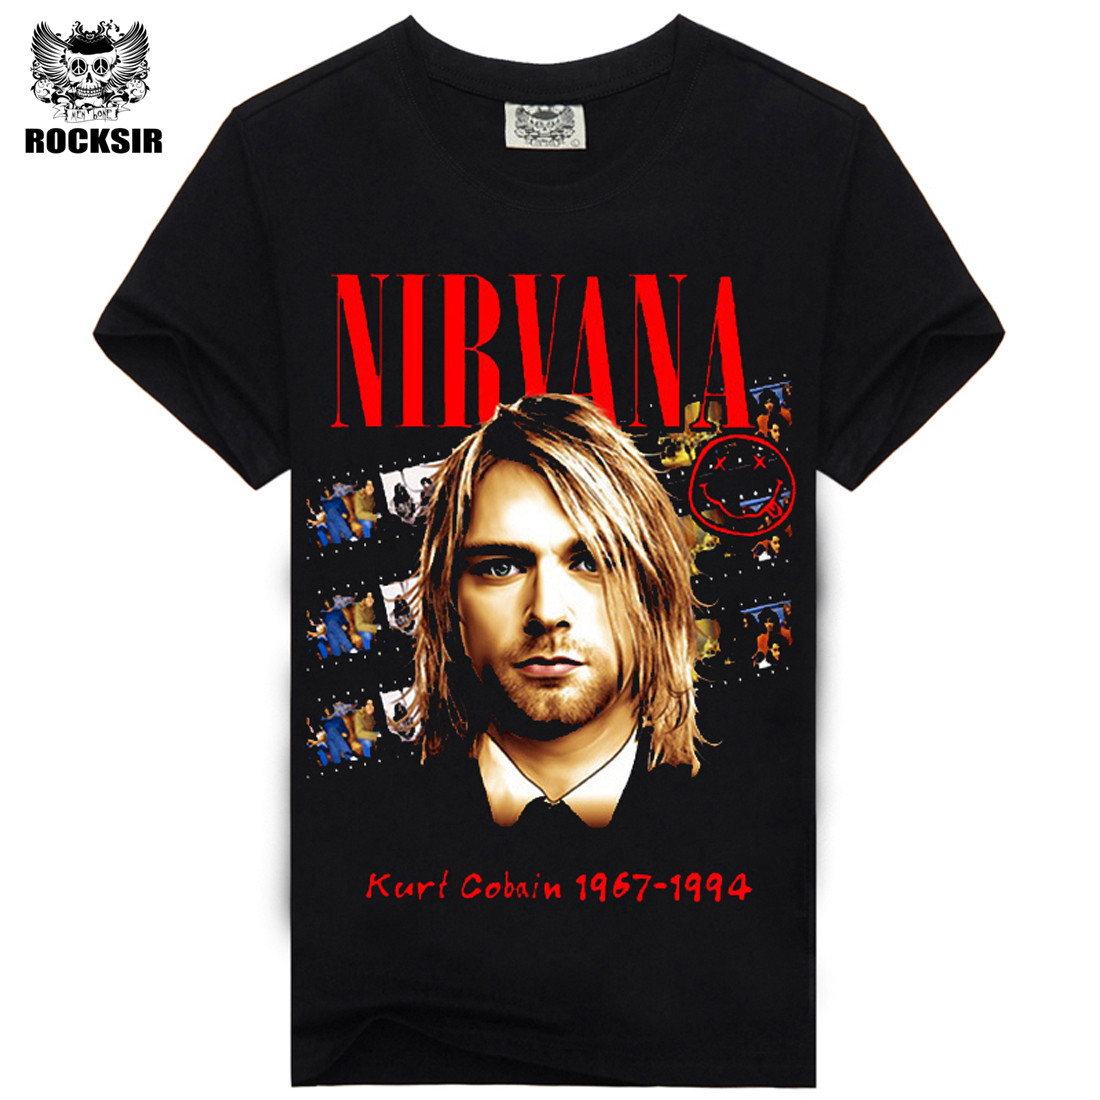 Rocksir Fashion short sleeve Heavy Metal black color rock band Nirvana t shirts hip pop t-shirt for men men's t-shirs